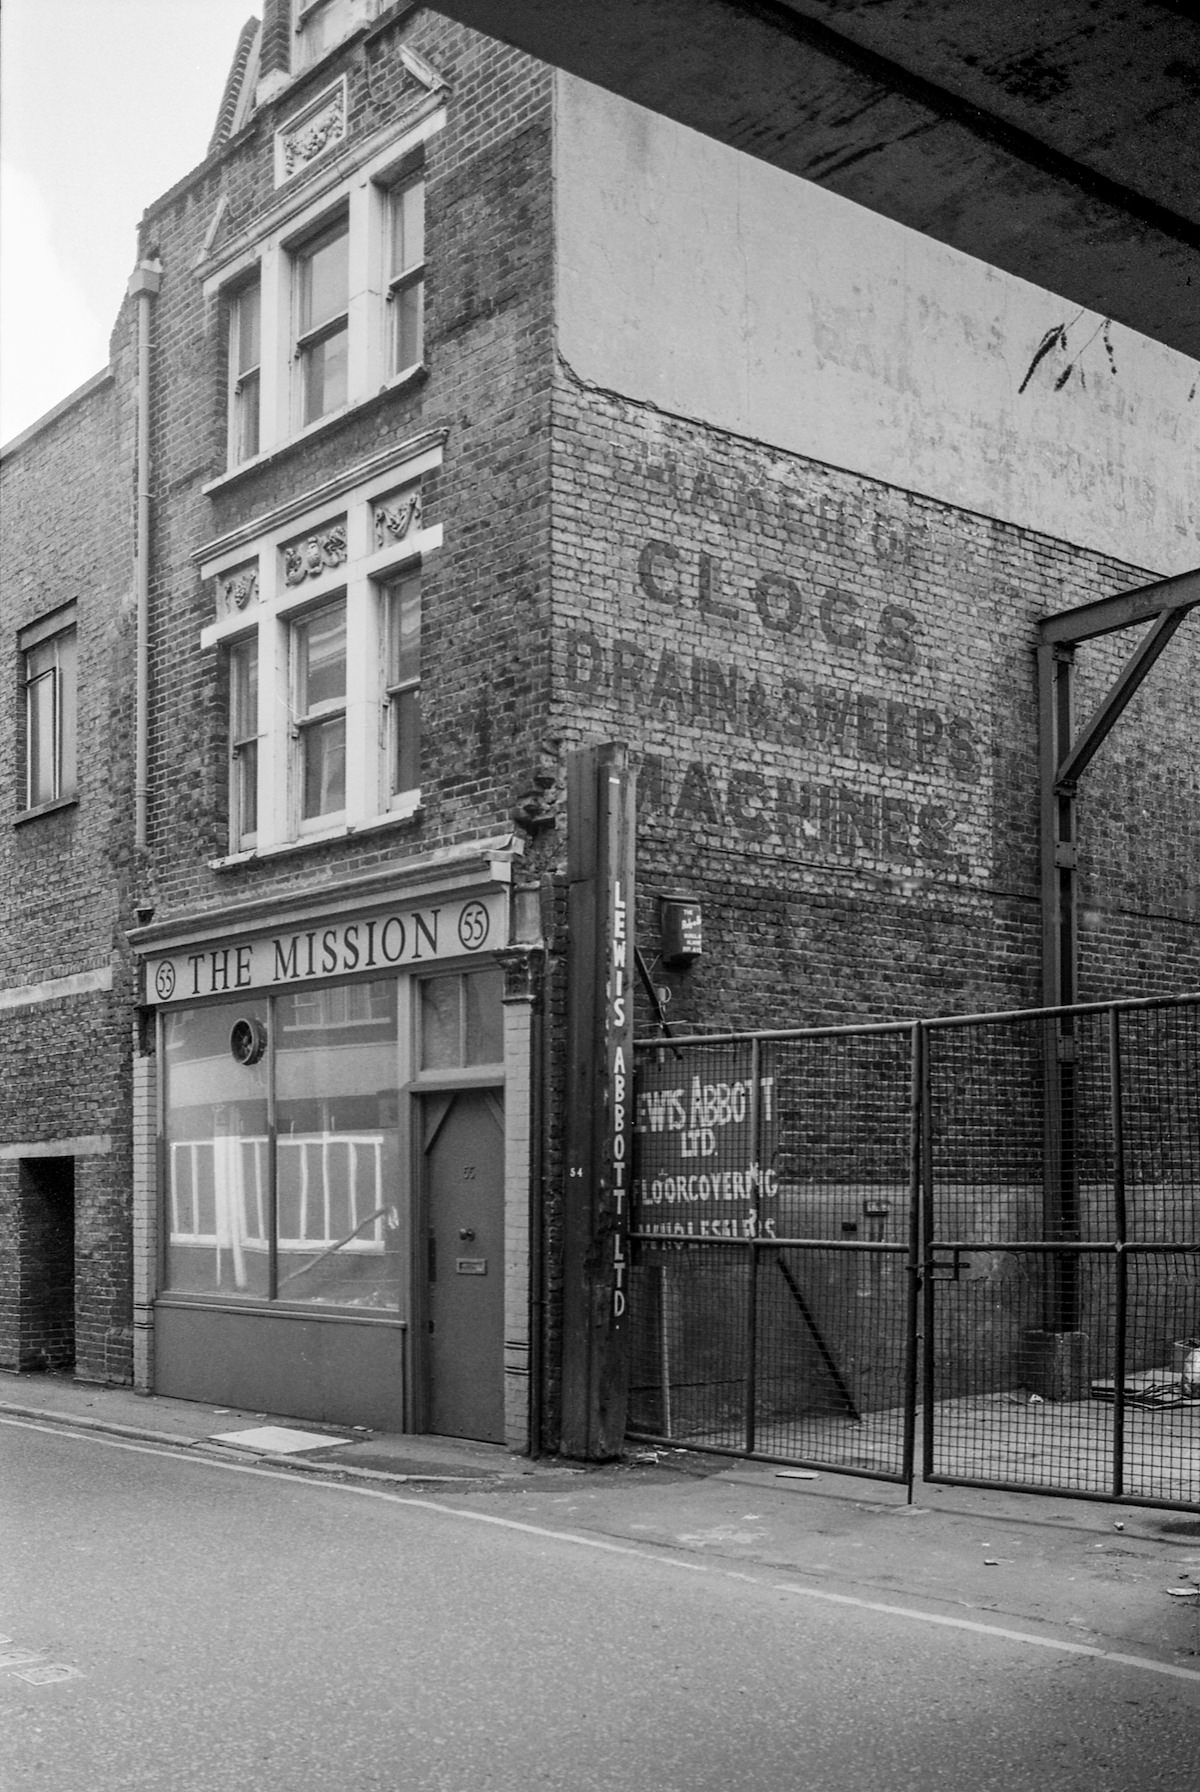 The Mission, Holywell Lane, Shoreditch, Hackney 1986